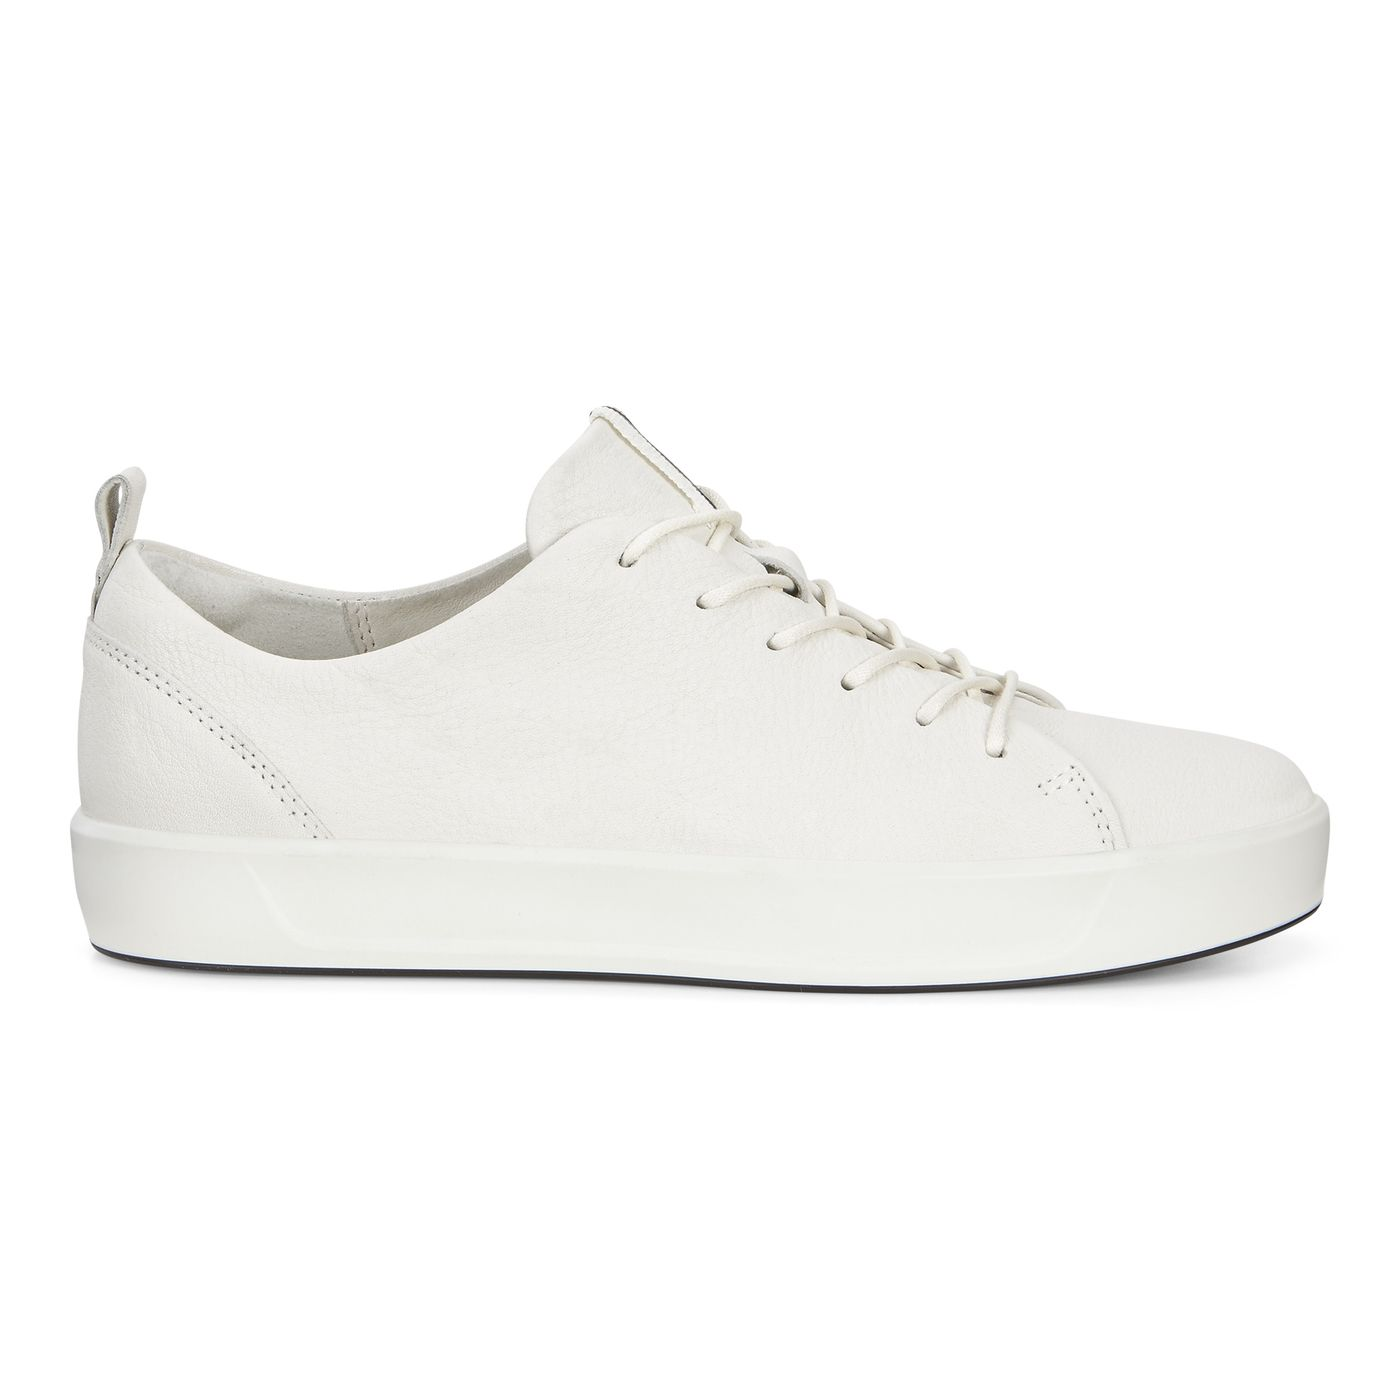 Leather sneakers women, Casual shoes